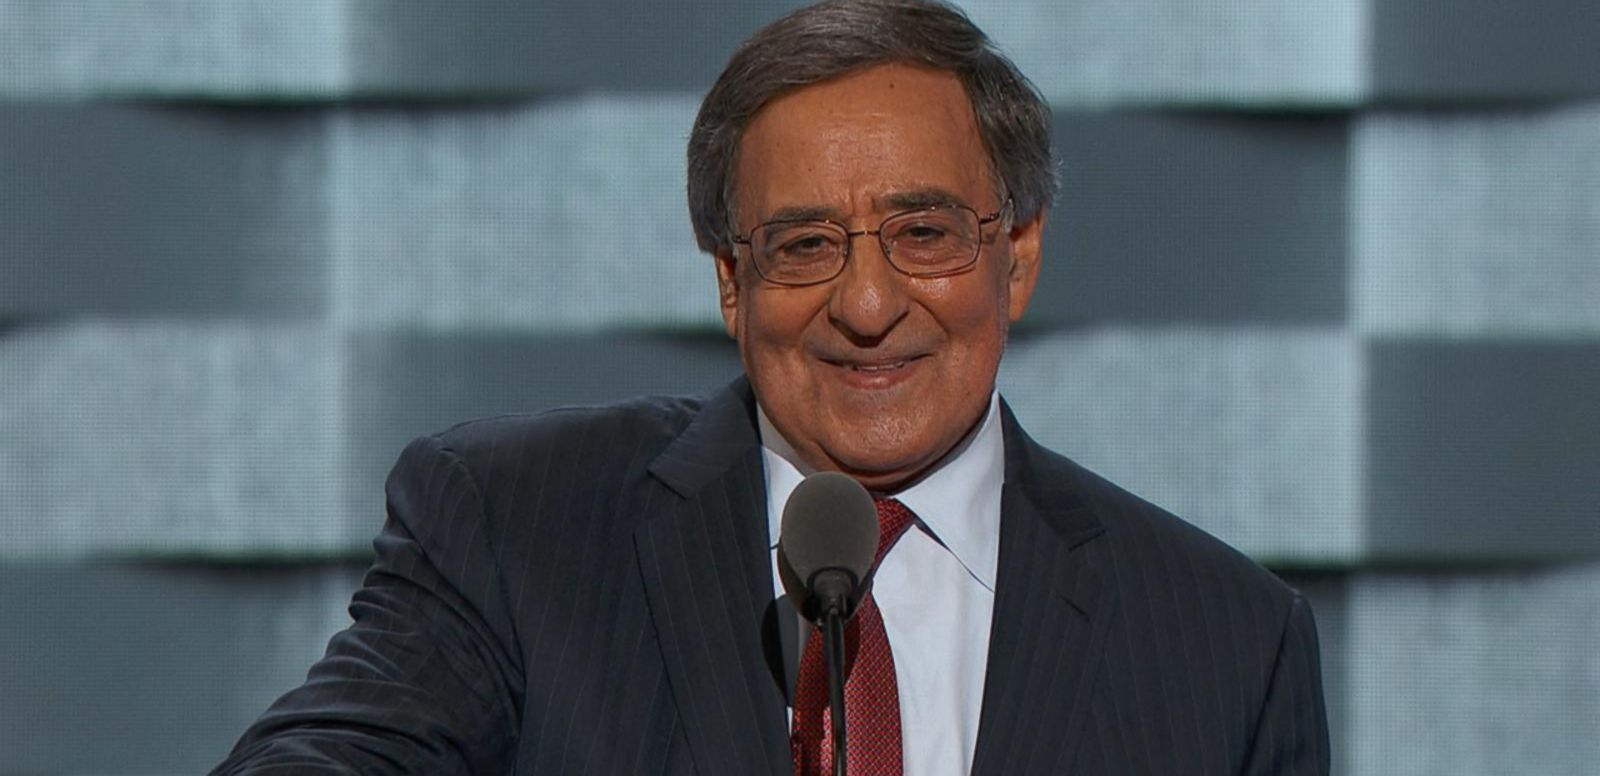 VIDEO: Leon Panetta: 'No One Attacks the United States and Gets Away With It'